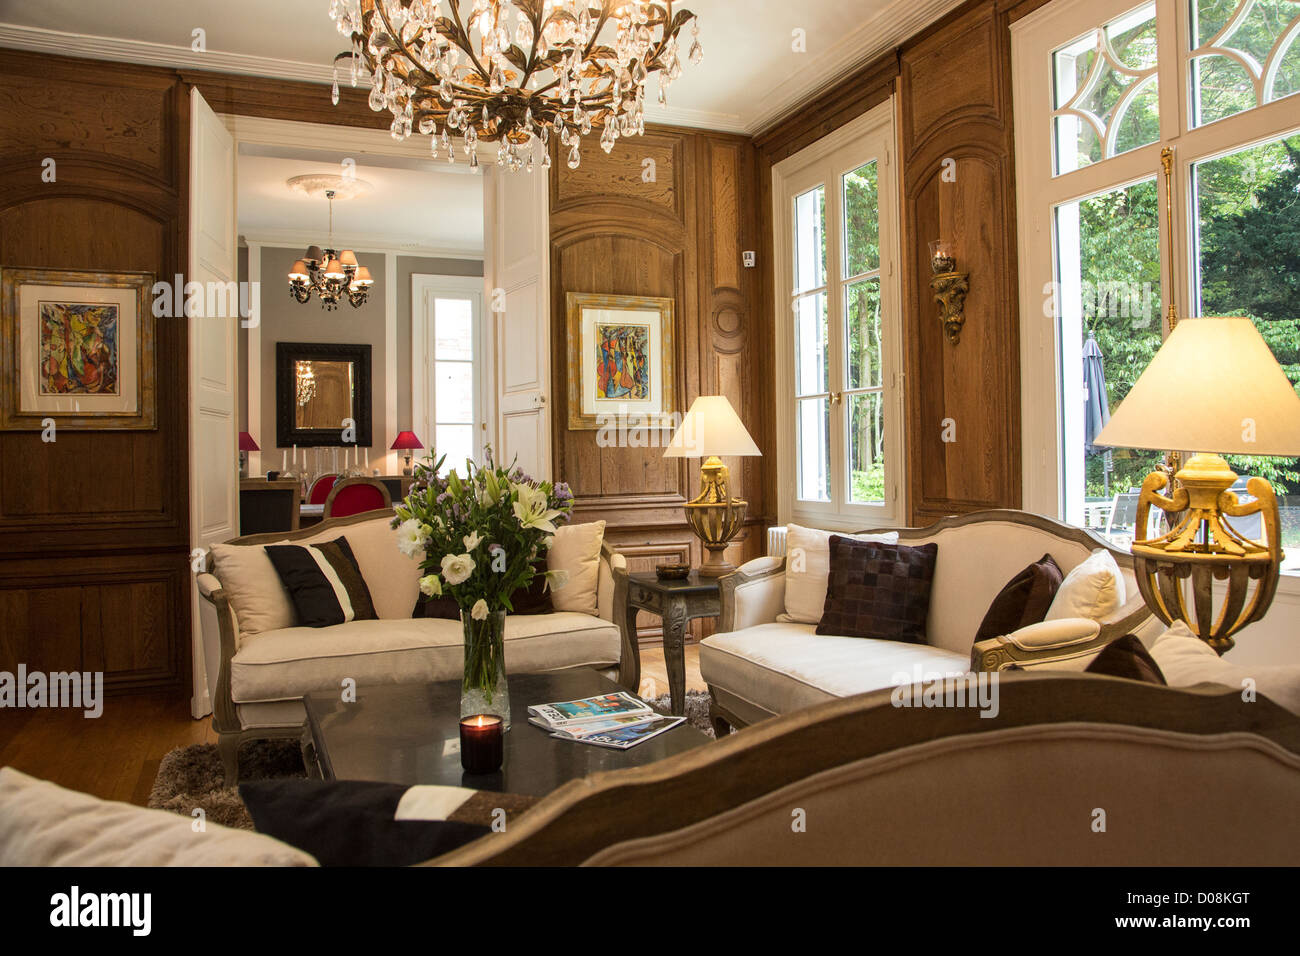 the lounge at the maison paradis bed breakfast chartres eure et loir stock photo royalty free. Black Bedroom Furniture Sets. Home Design Ideas